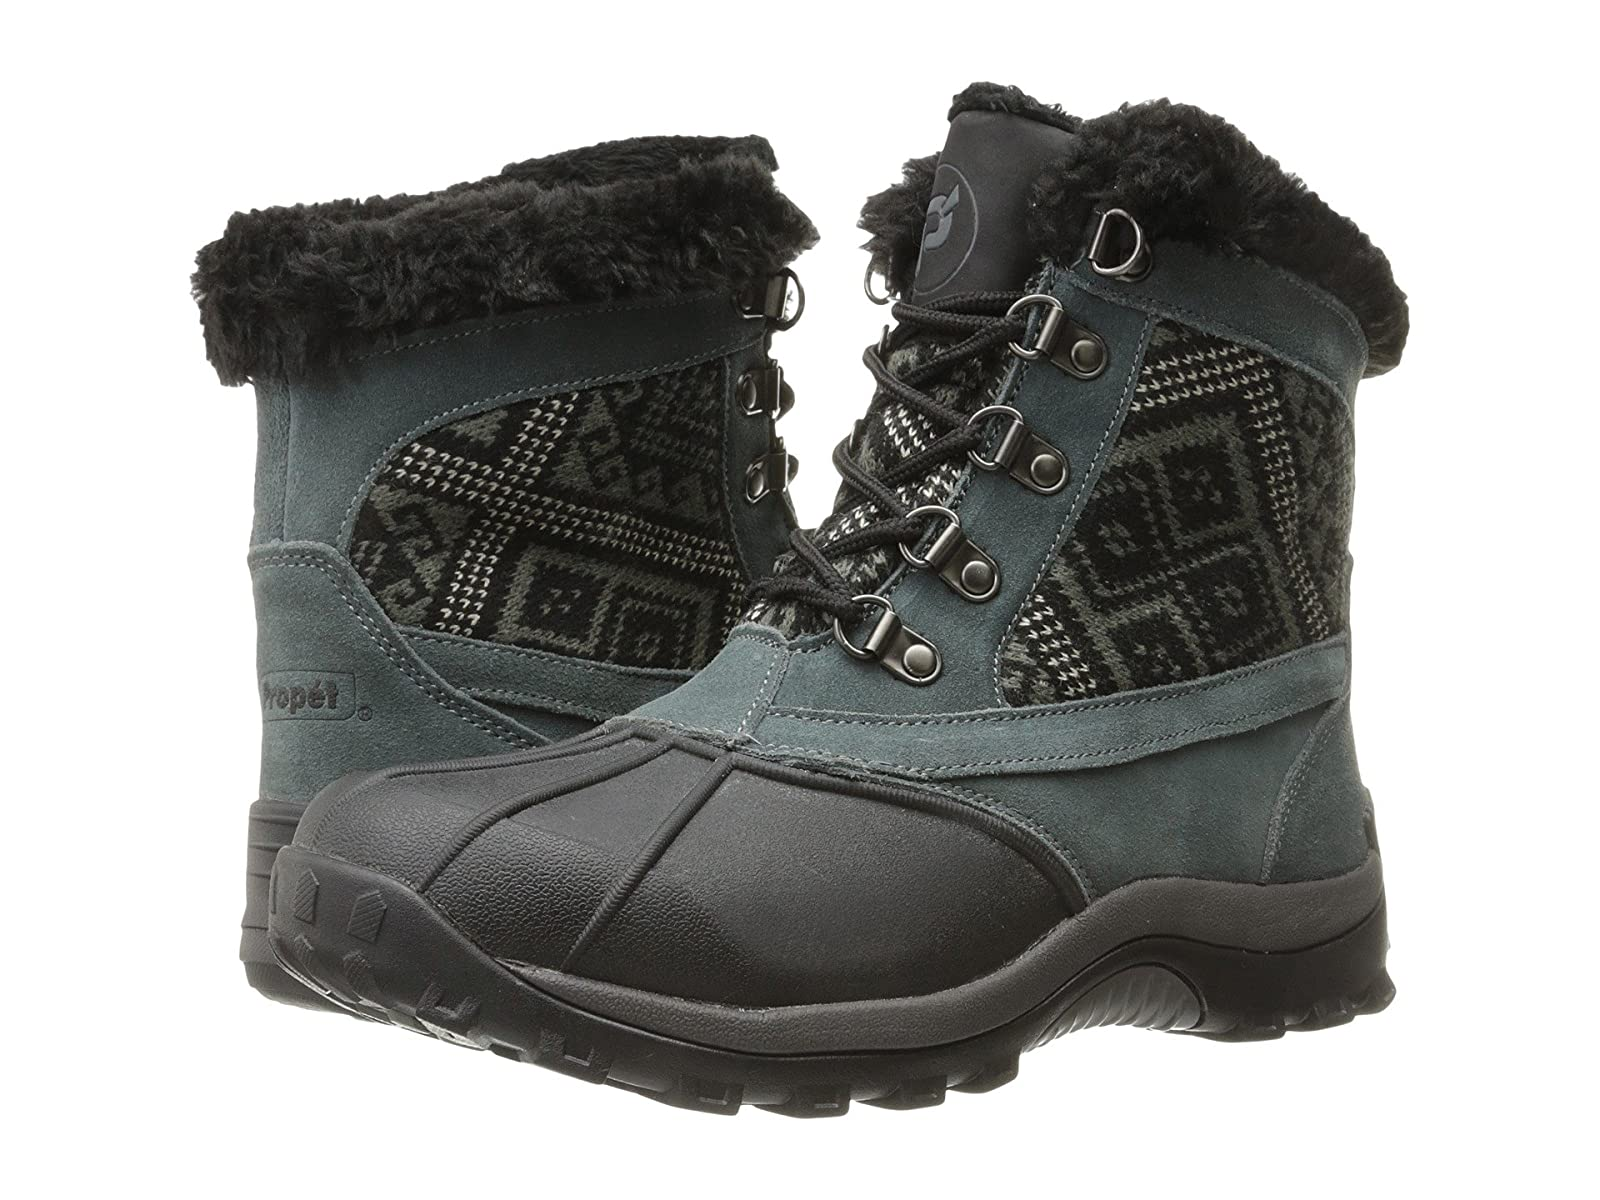 Propet Blizzard Mid Lace IICheap and distinctive eye-catching shoes